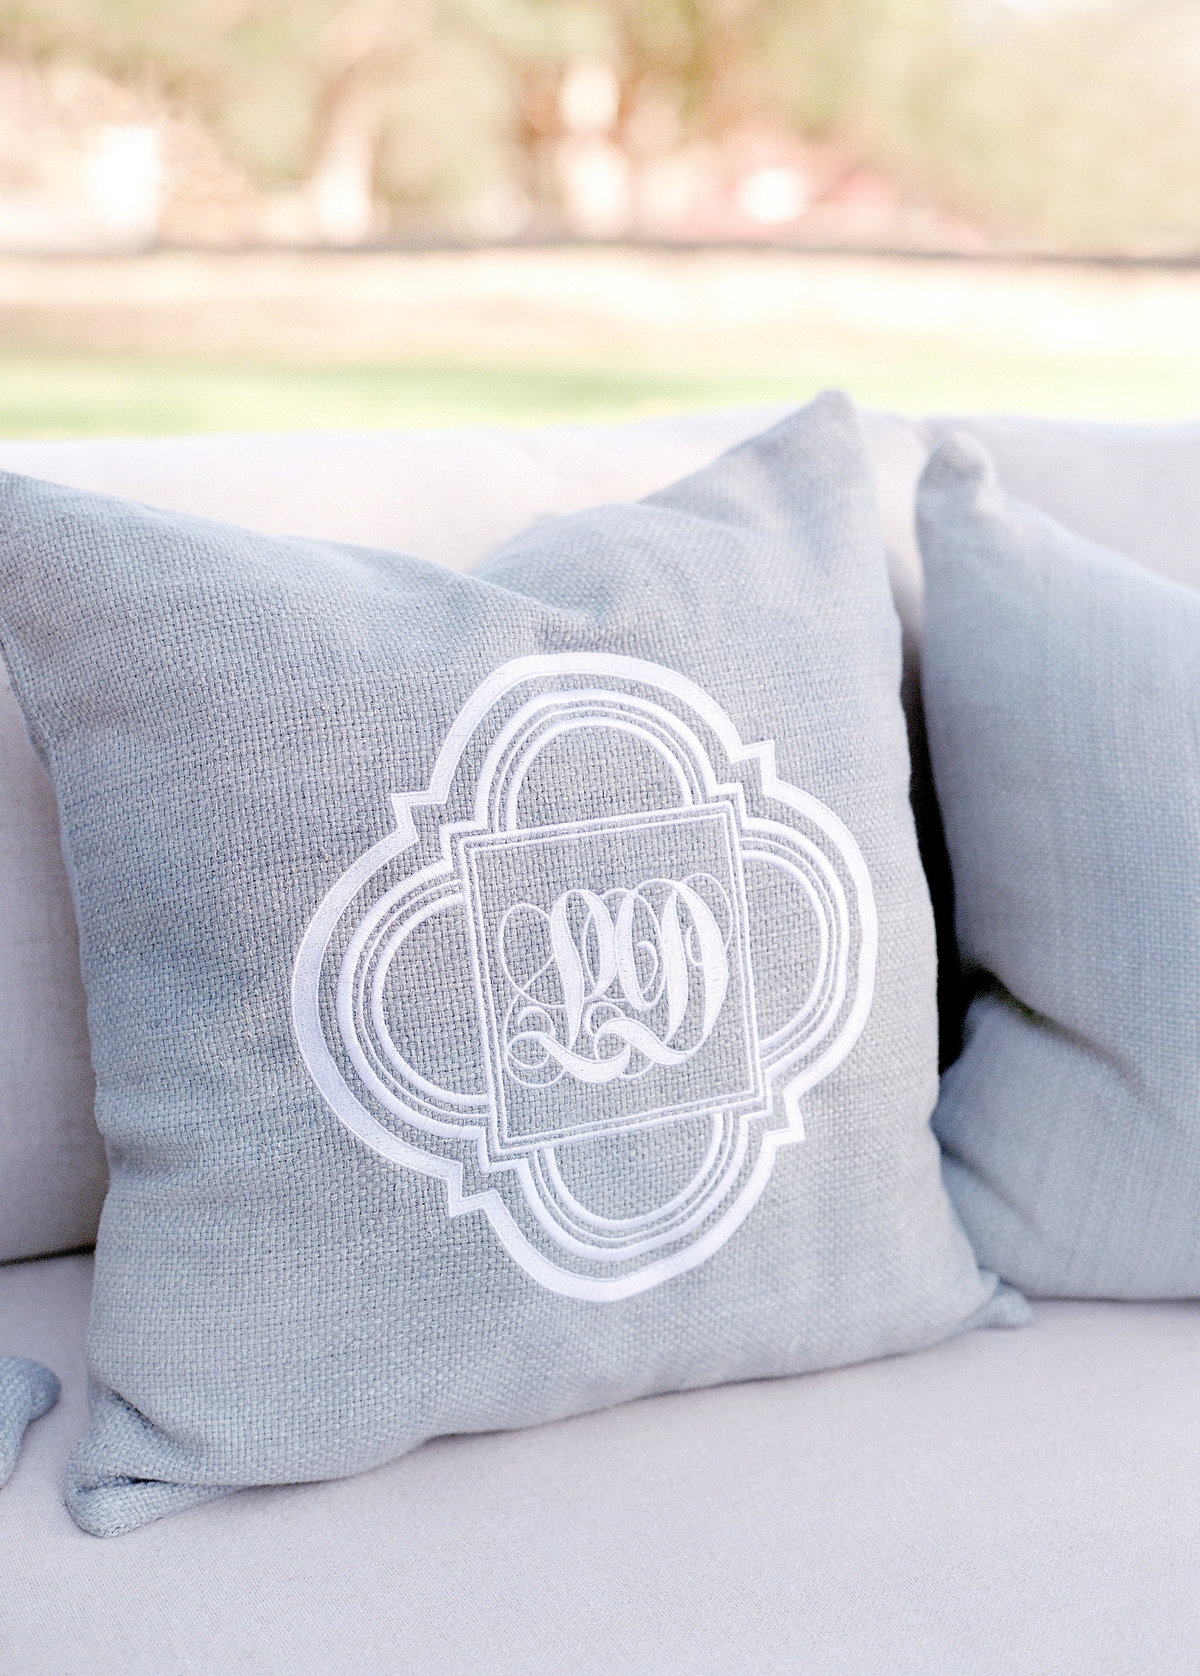 Monogrammed grey pillows for Cavallo Point wedding by Jenny Schneider Events.